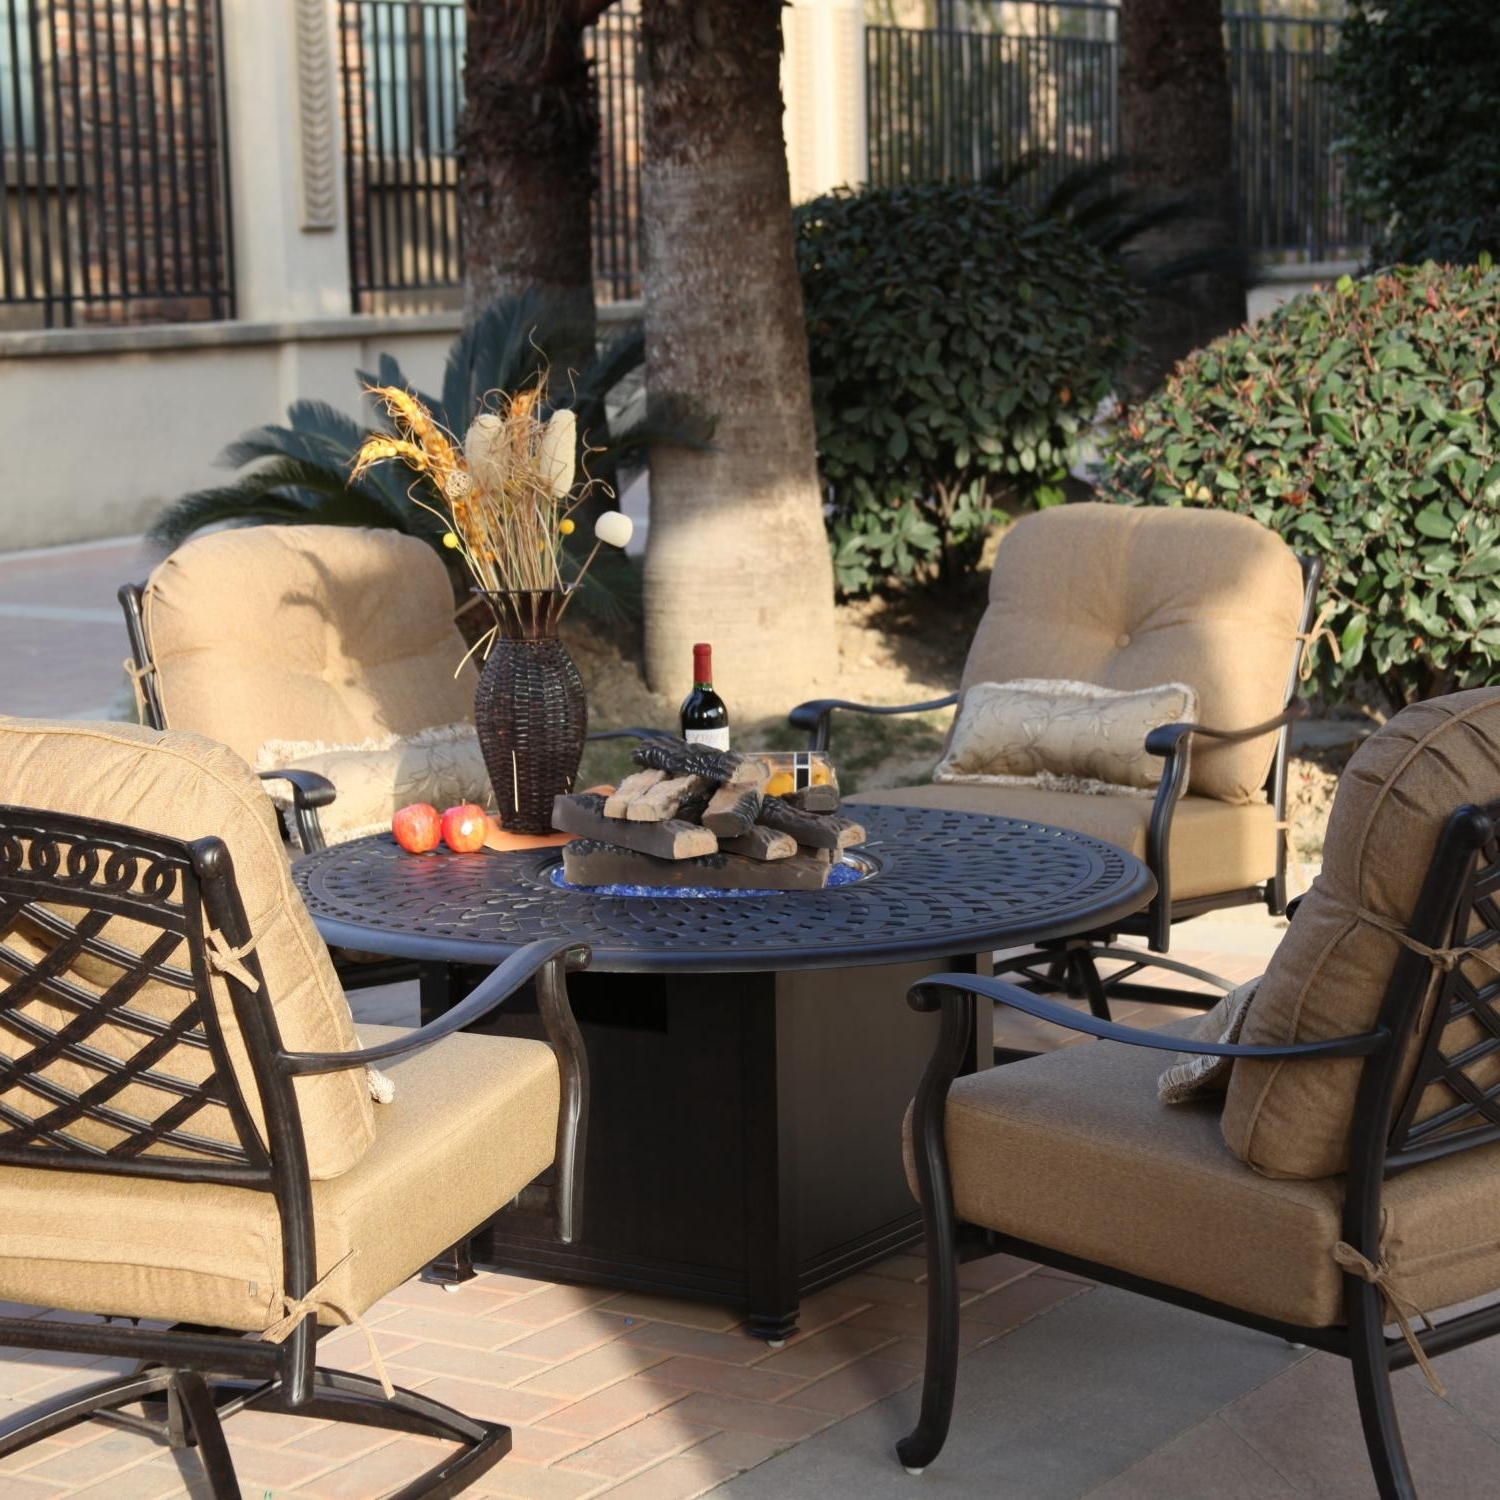 Patio Conversation Sets With Fire Pit Table With Regard To 2019 Darlee Sedona 5 Piece Aluminum Patio Fire Pit Seating Set (View 14 of 20)